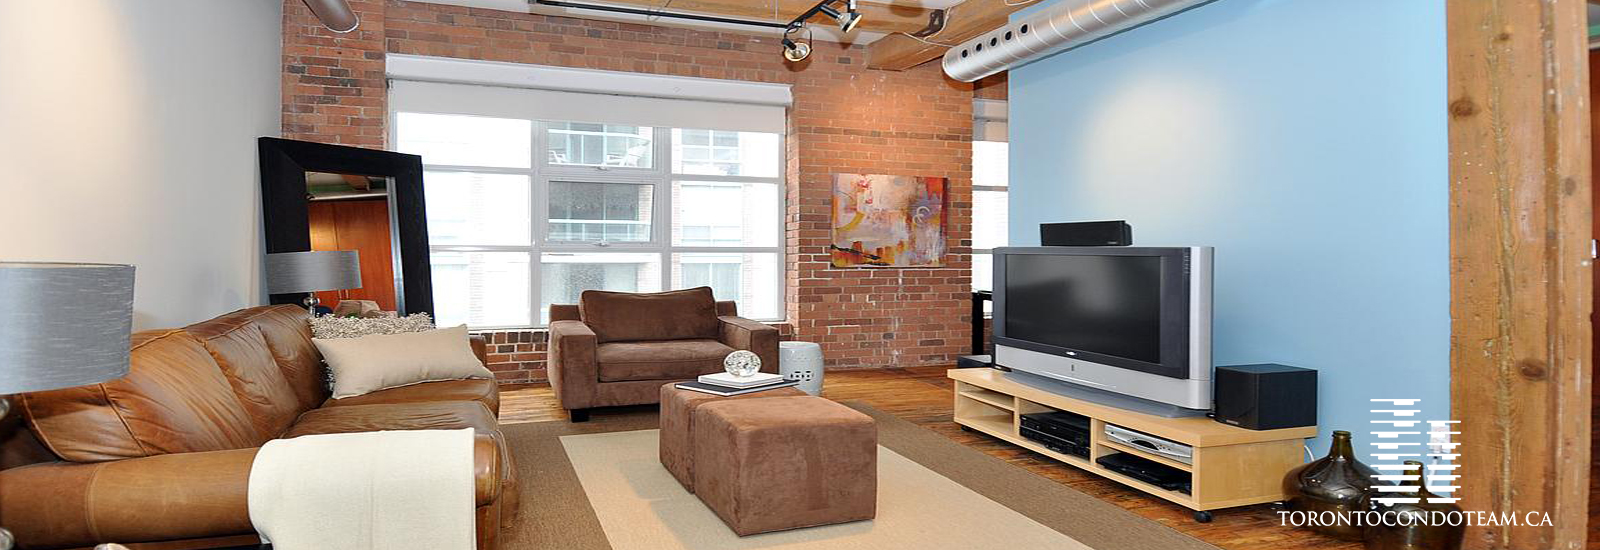 80-90 Sherbourne Street Condos For Sale